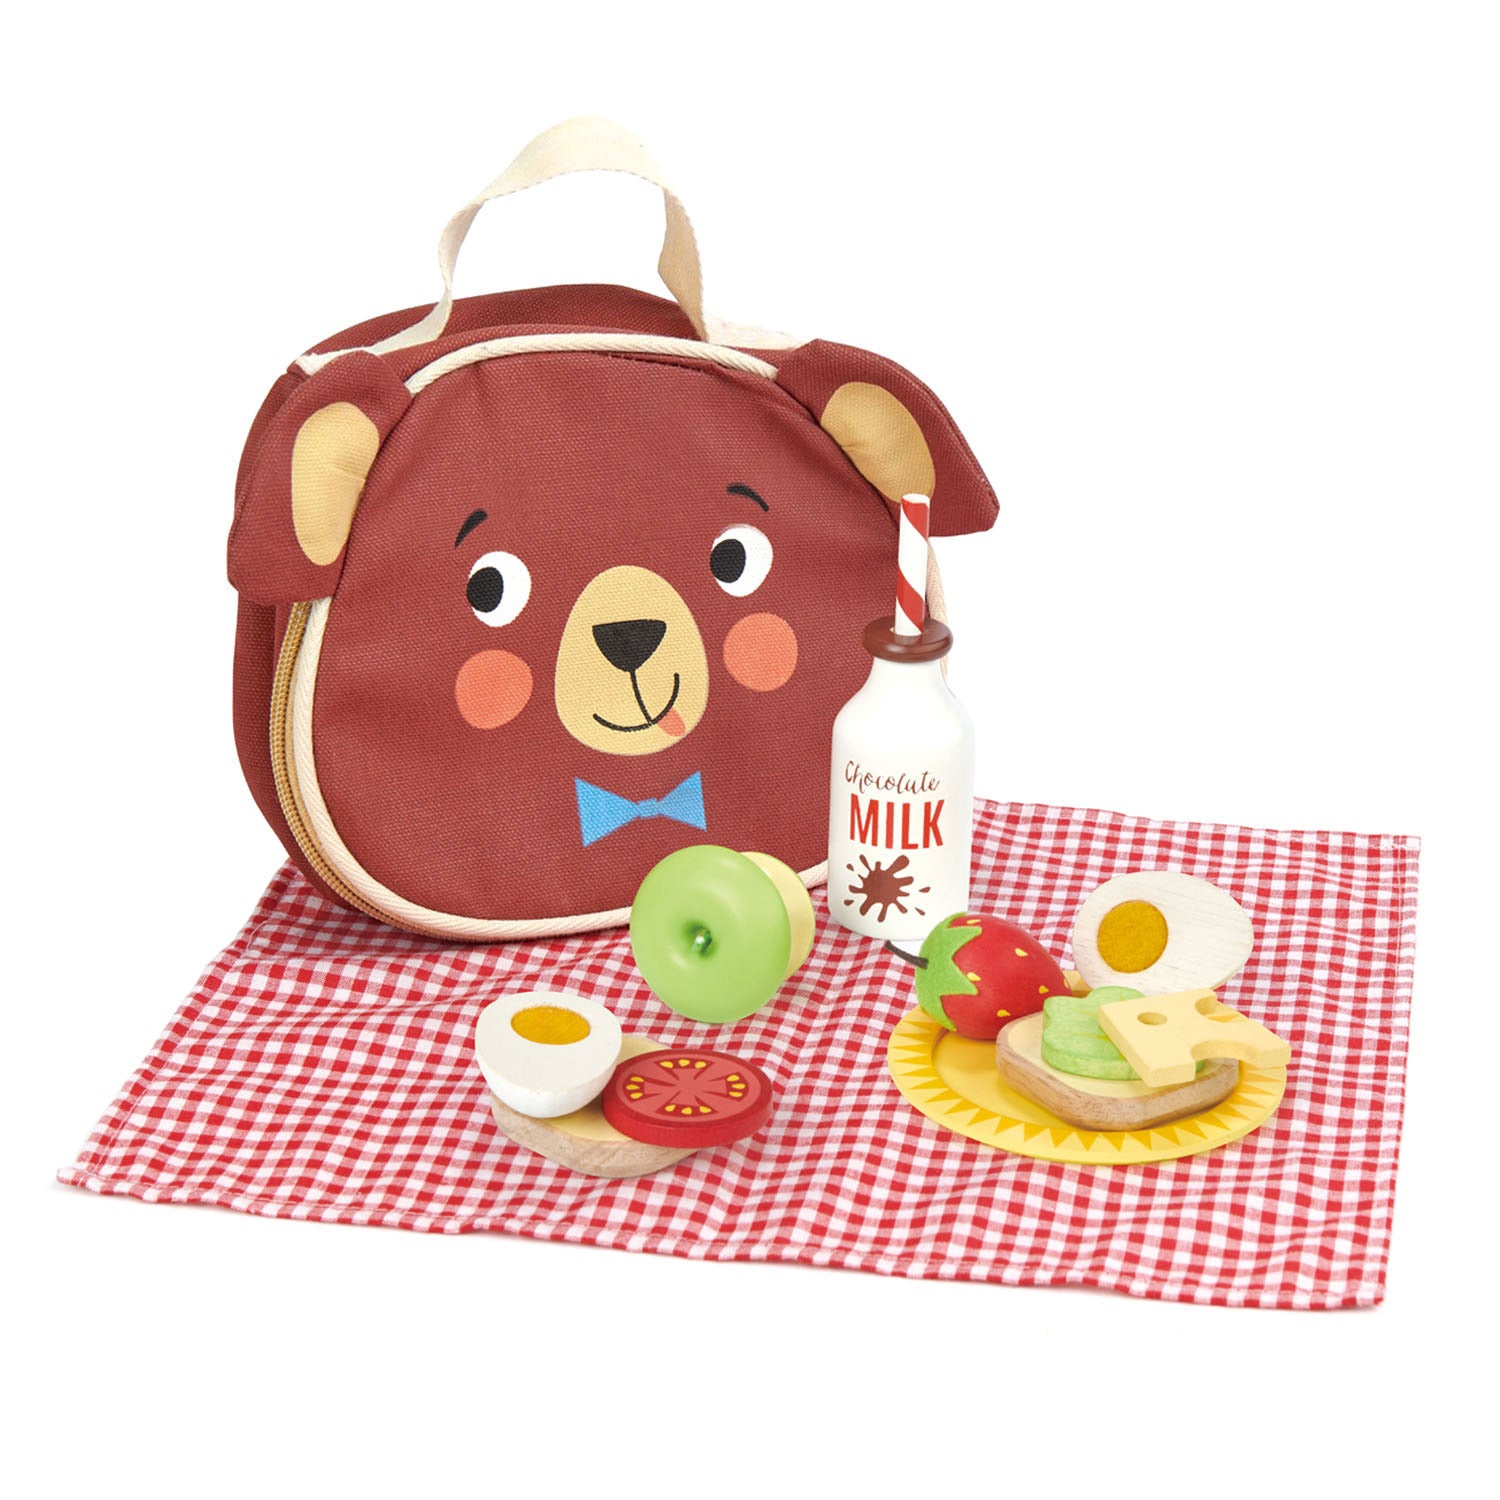 Little Bear's Picnic Bag Set